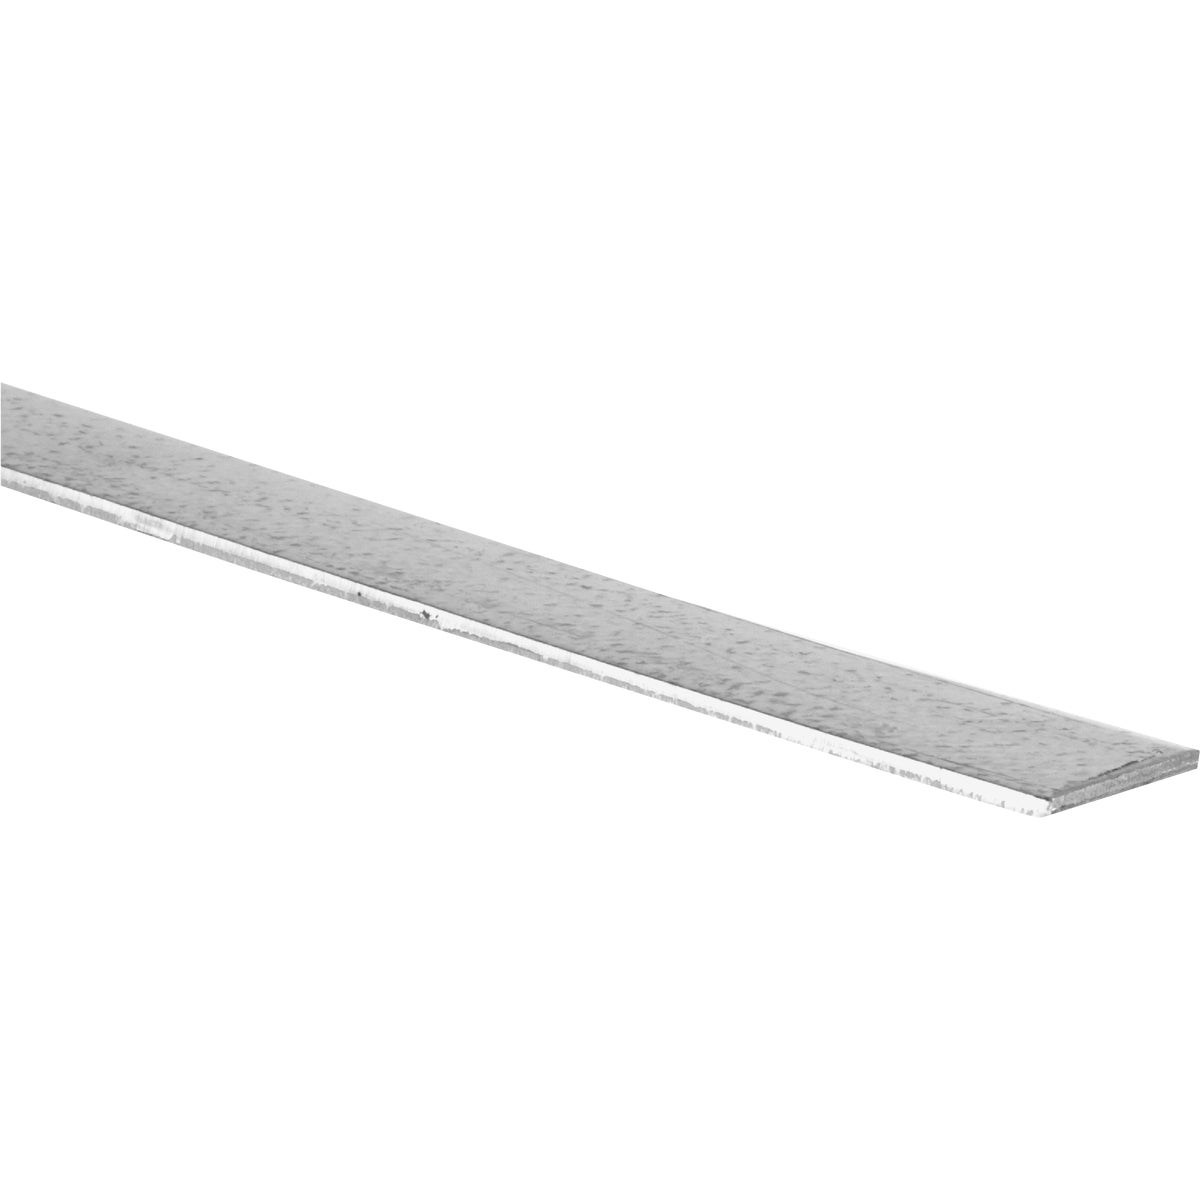 1X4' ZP STEEL FLAT PLATE - N180026 by National Mfg Co